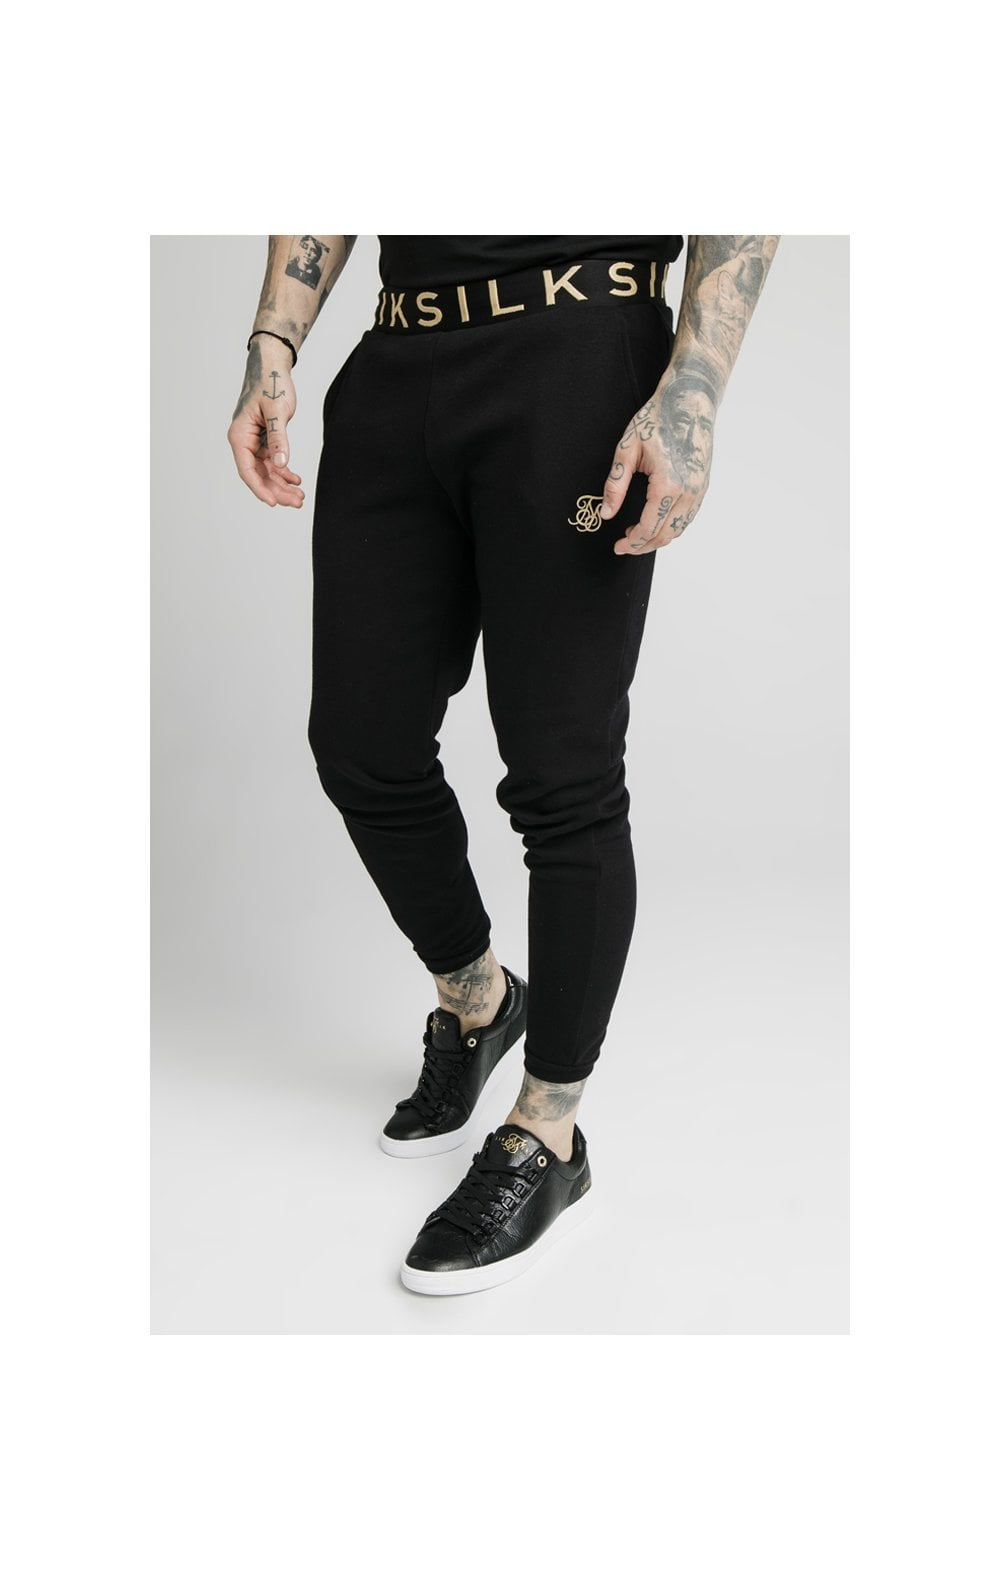 Load image into Gallery viewer, SikSilk Elastic Jacquard Pants - Black